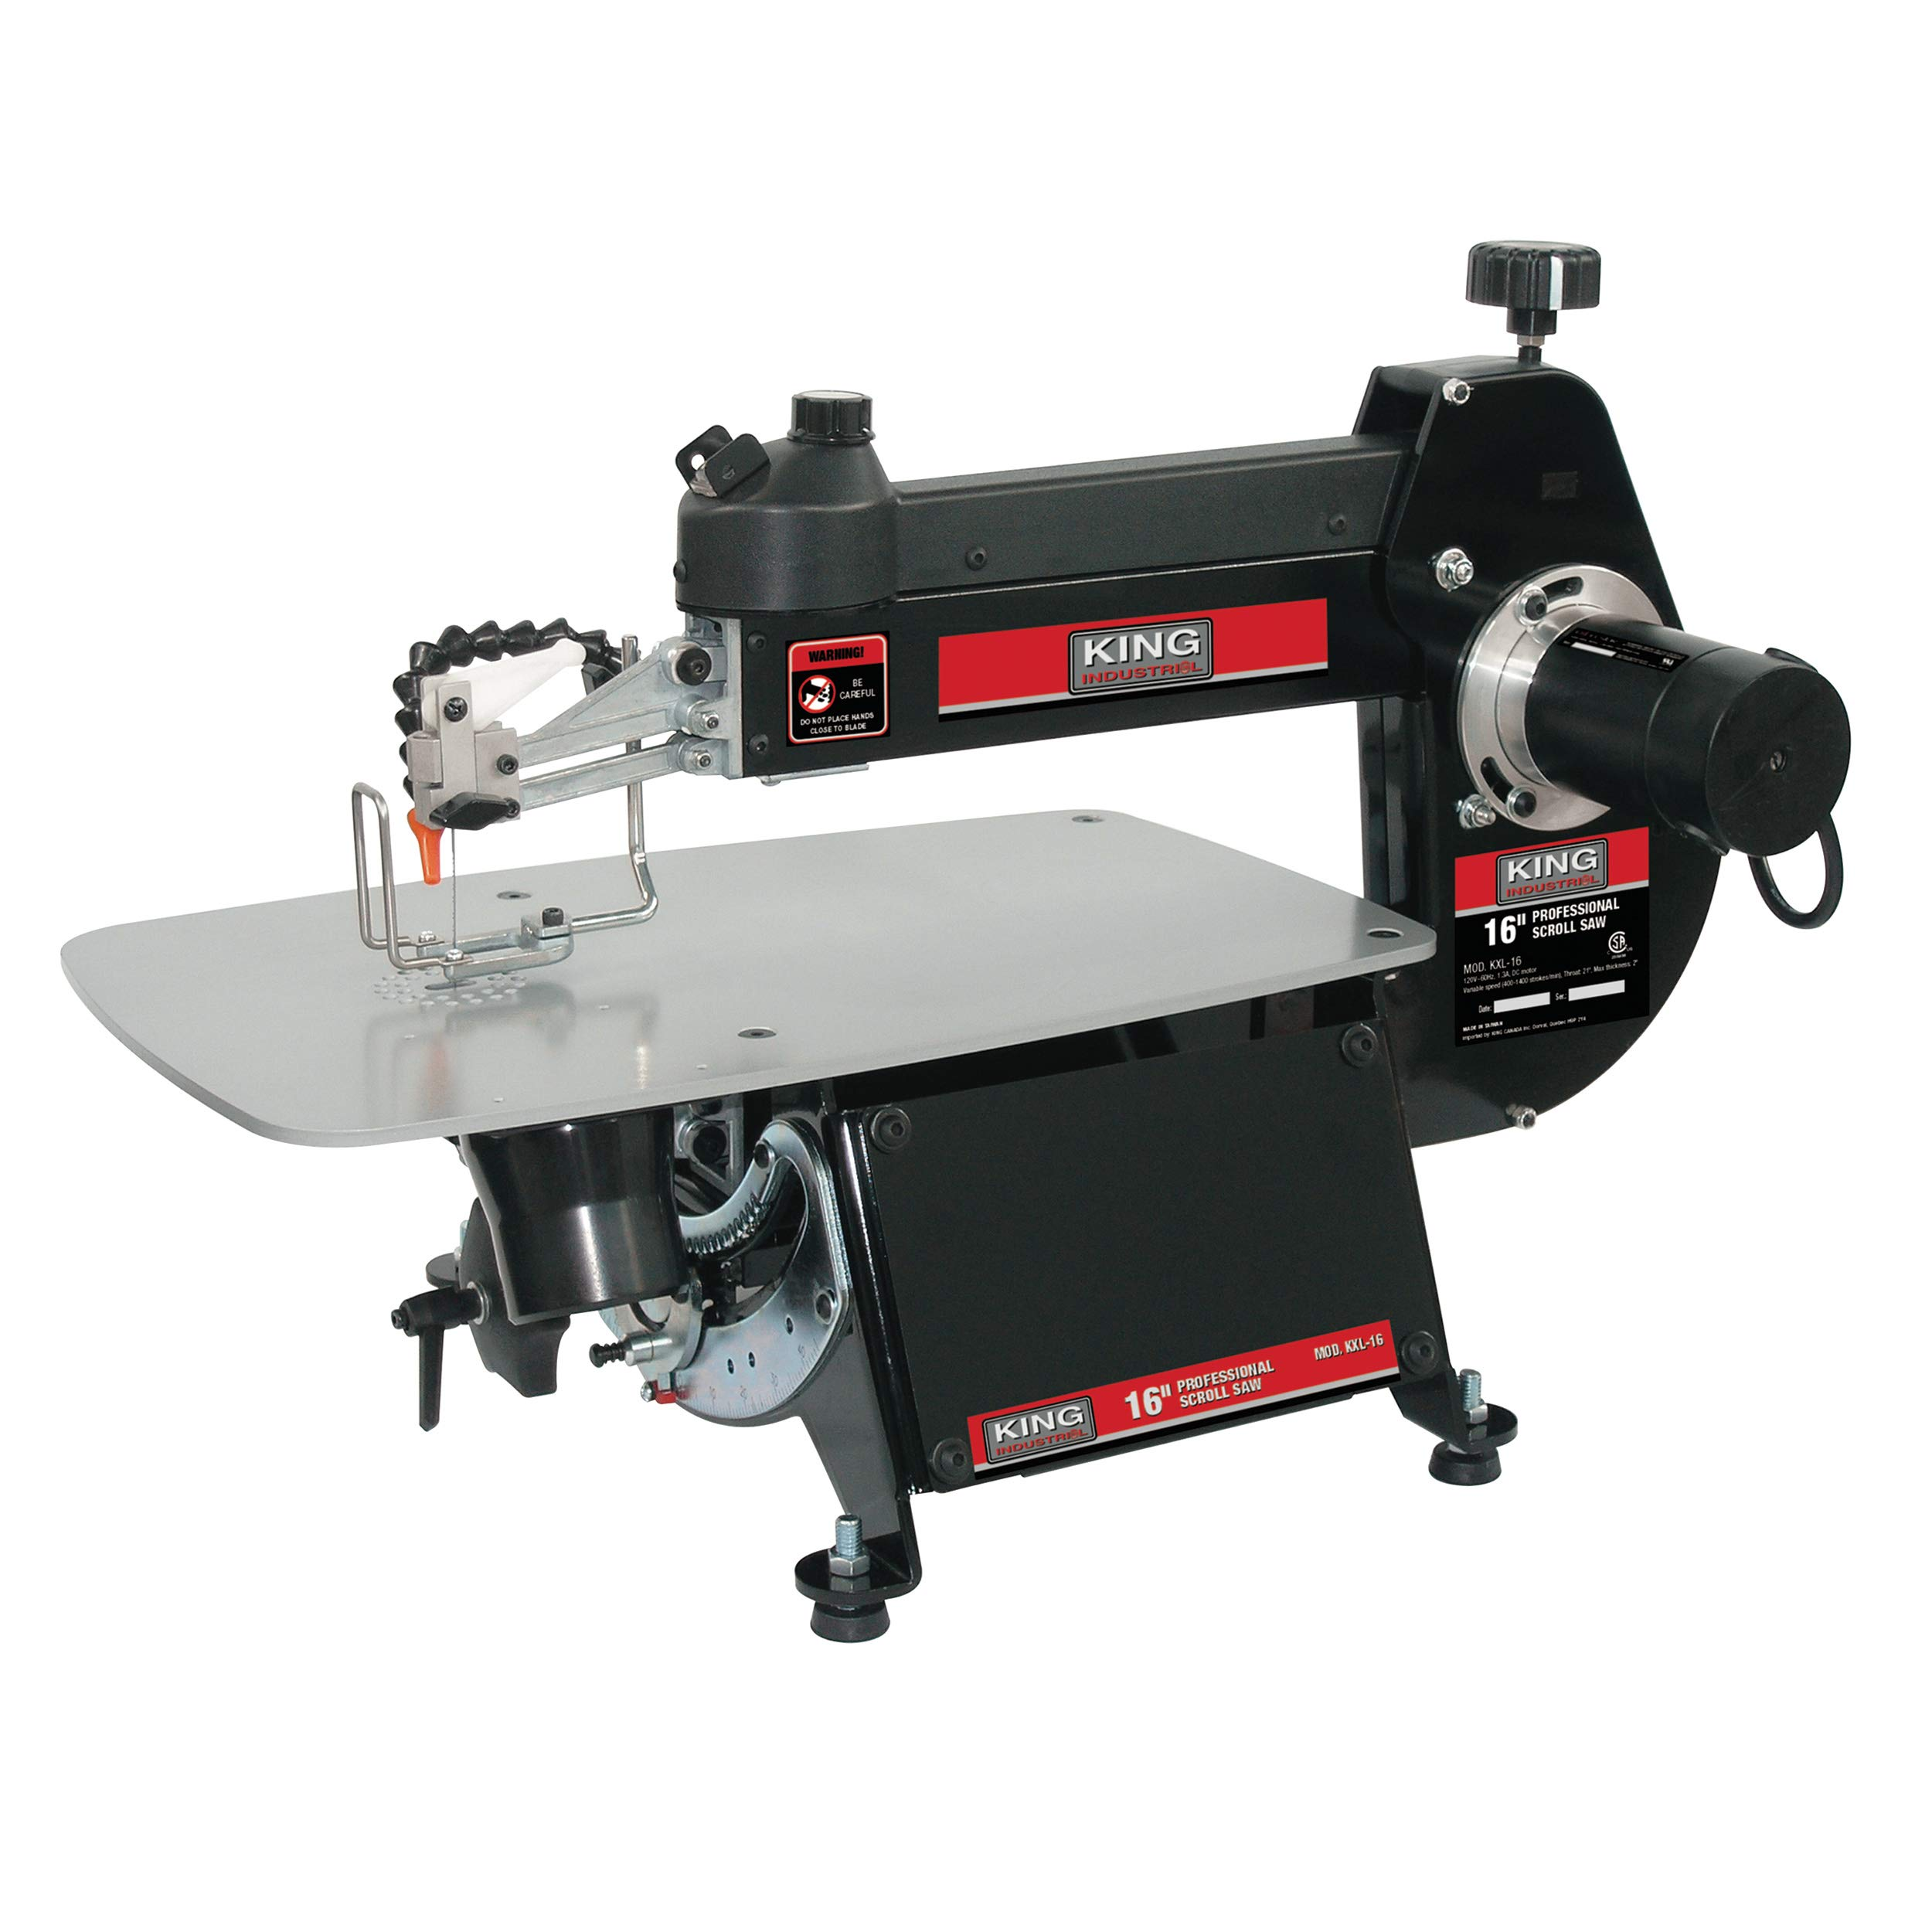 King Industrial 16 Inch Scroll Saw by King Industrial